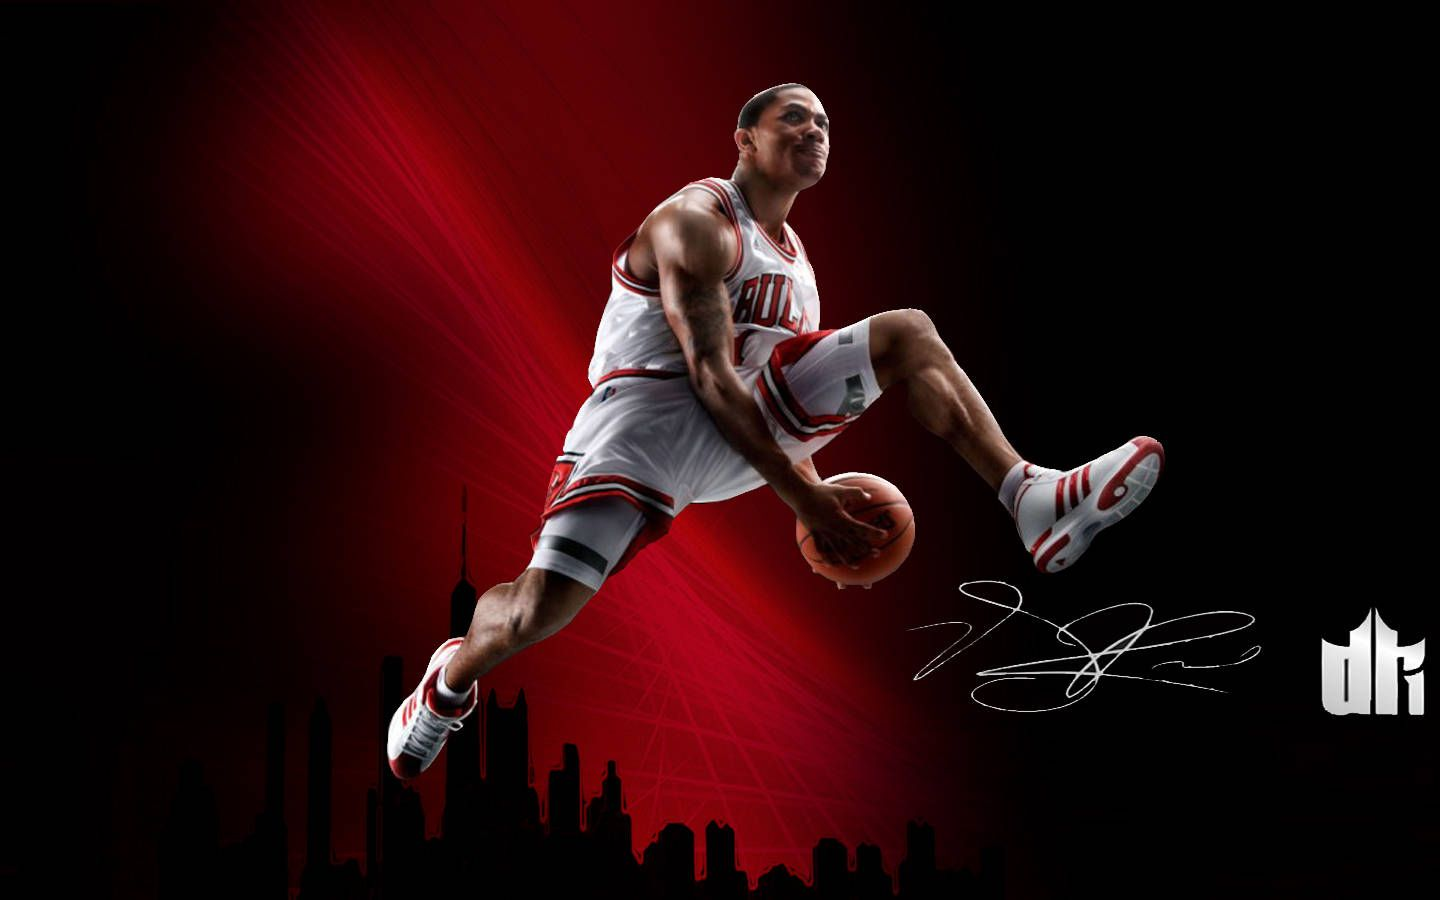 Hd Basketball Wallpapers Top Free Hd Basketball Backgrounds Wallpaperaccess